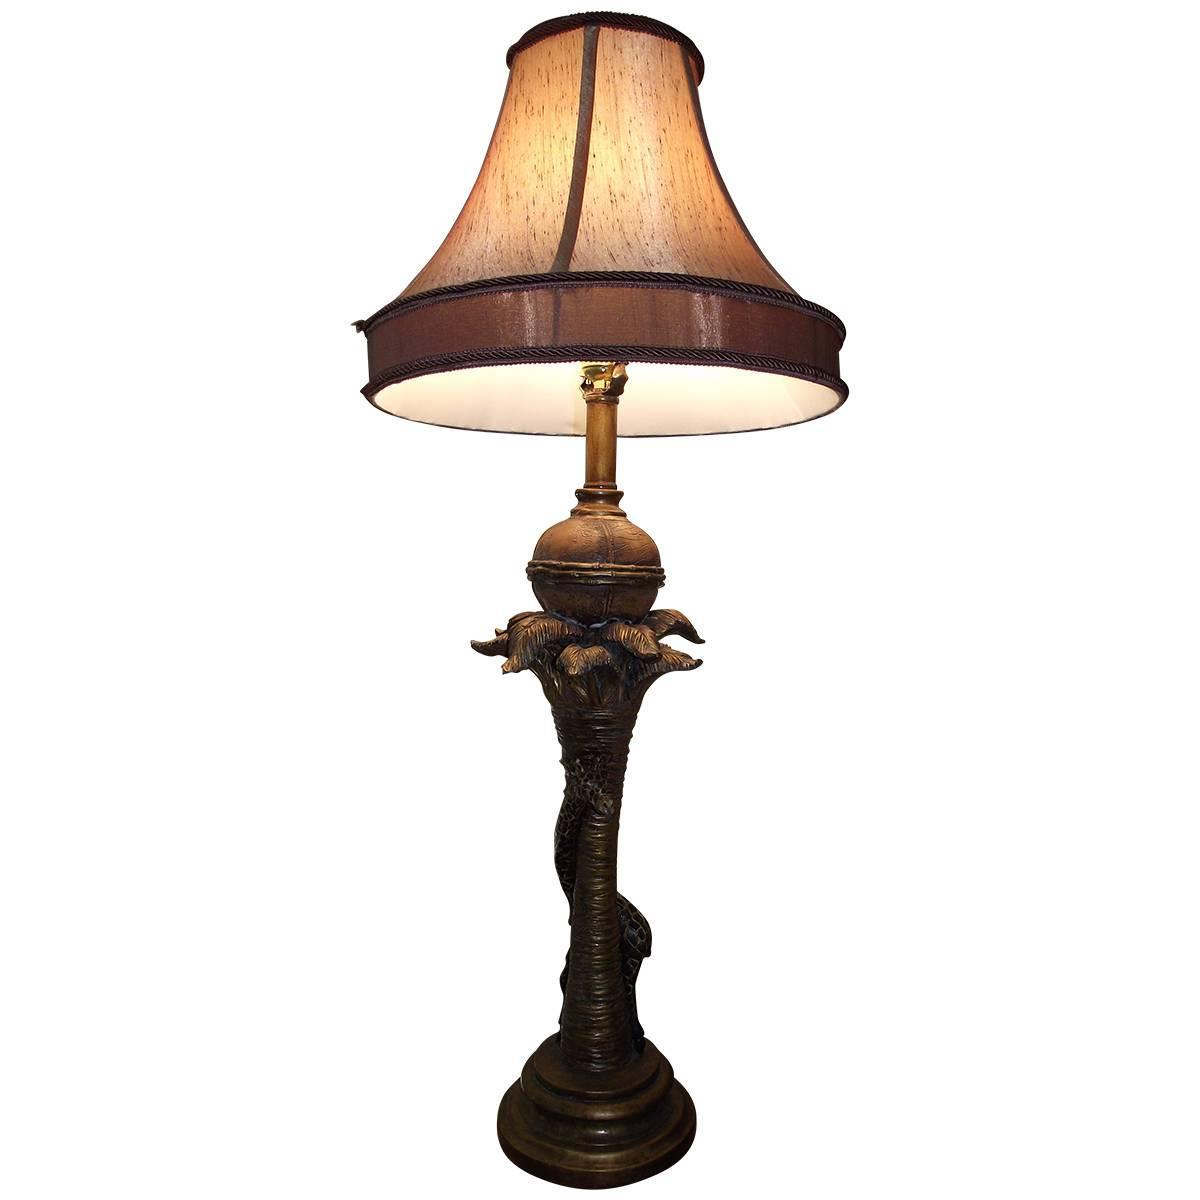 giraffe table or buffet lamp unusual lamp in brown and gold finish at